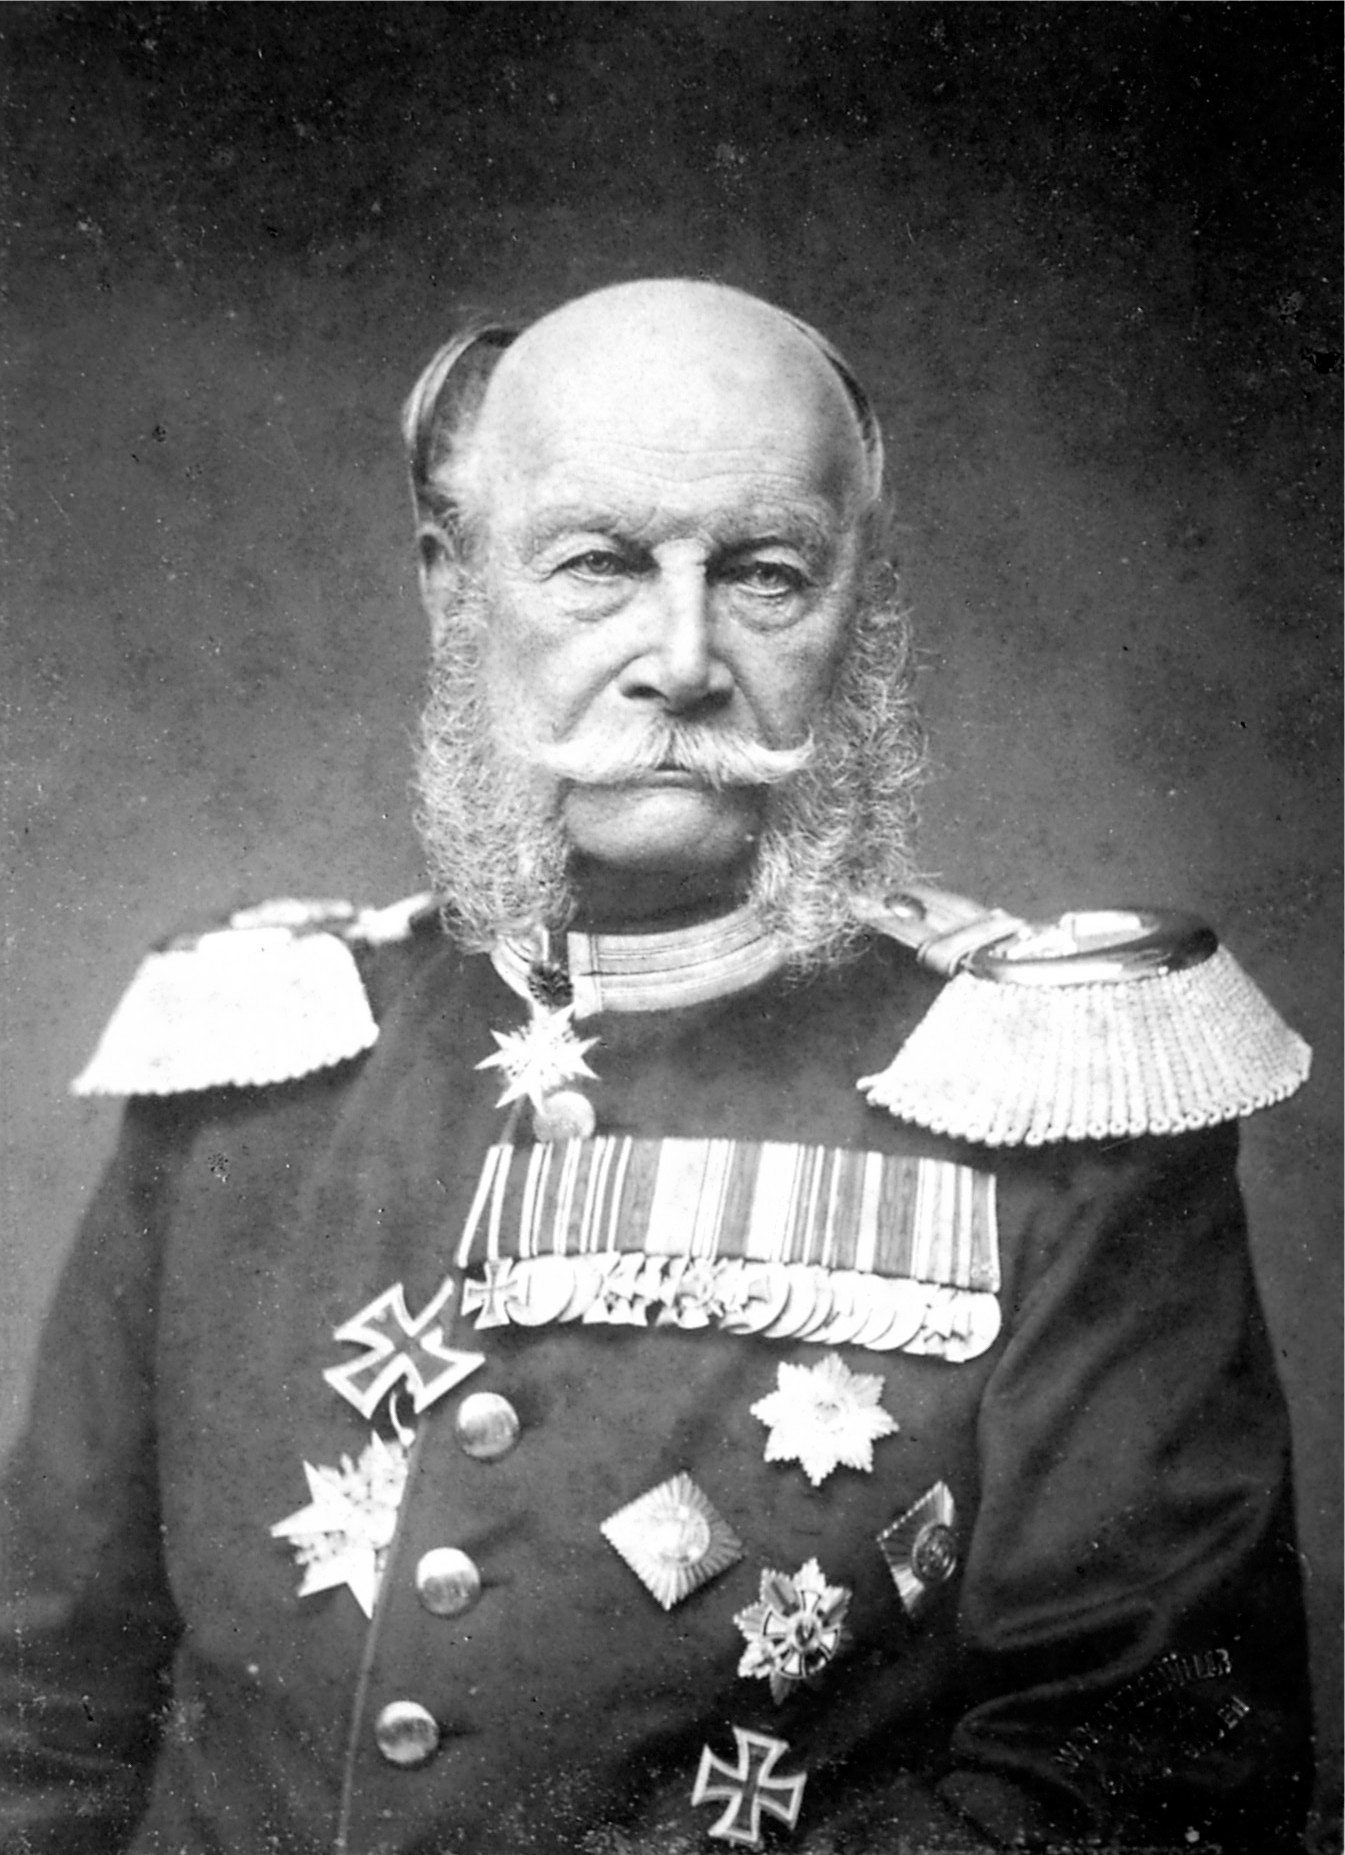 http://upload.wikimedia.org/wikipedia/commons/0/01/Kaiser_Wilhelm_I._.JPG